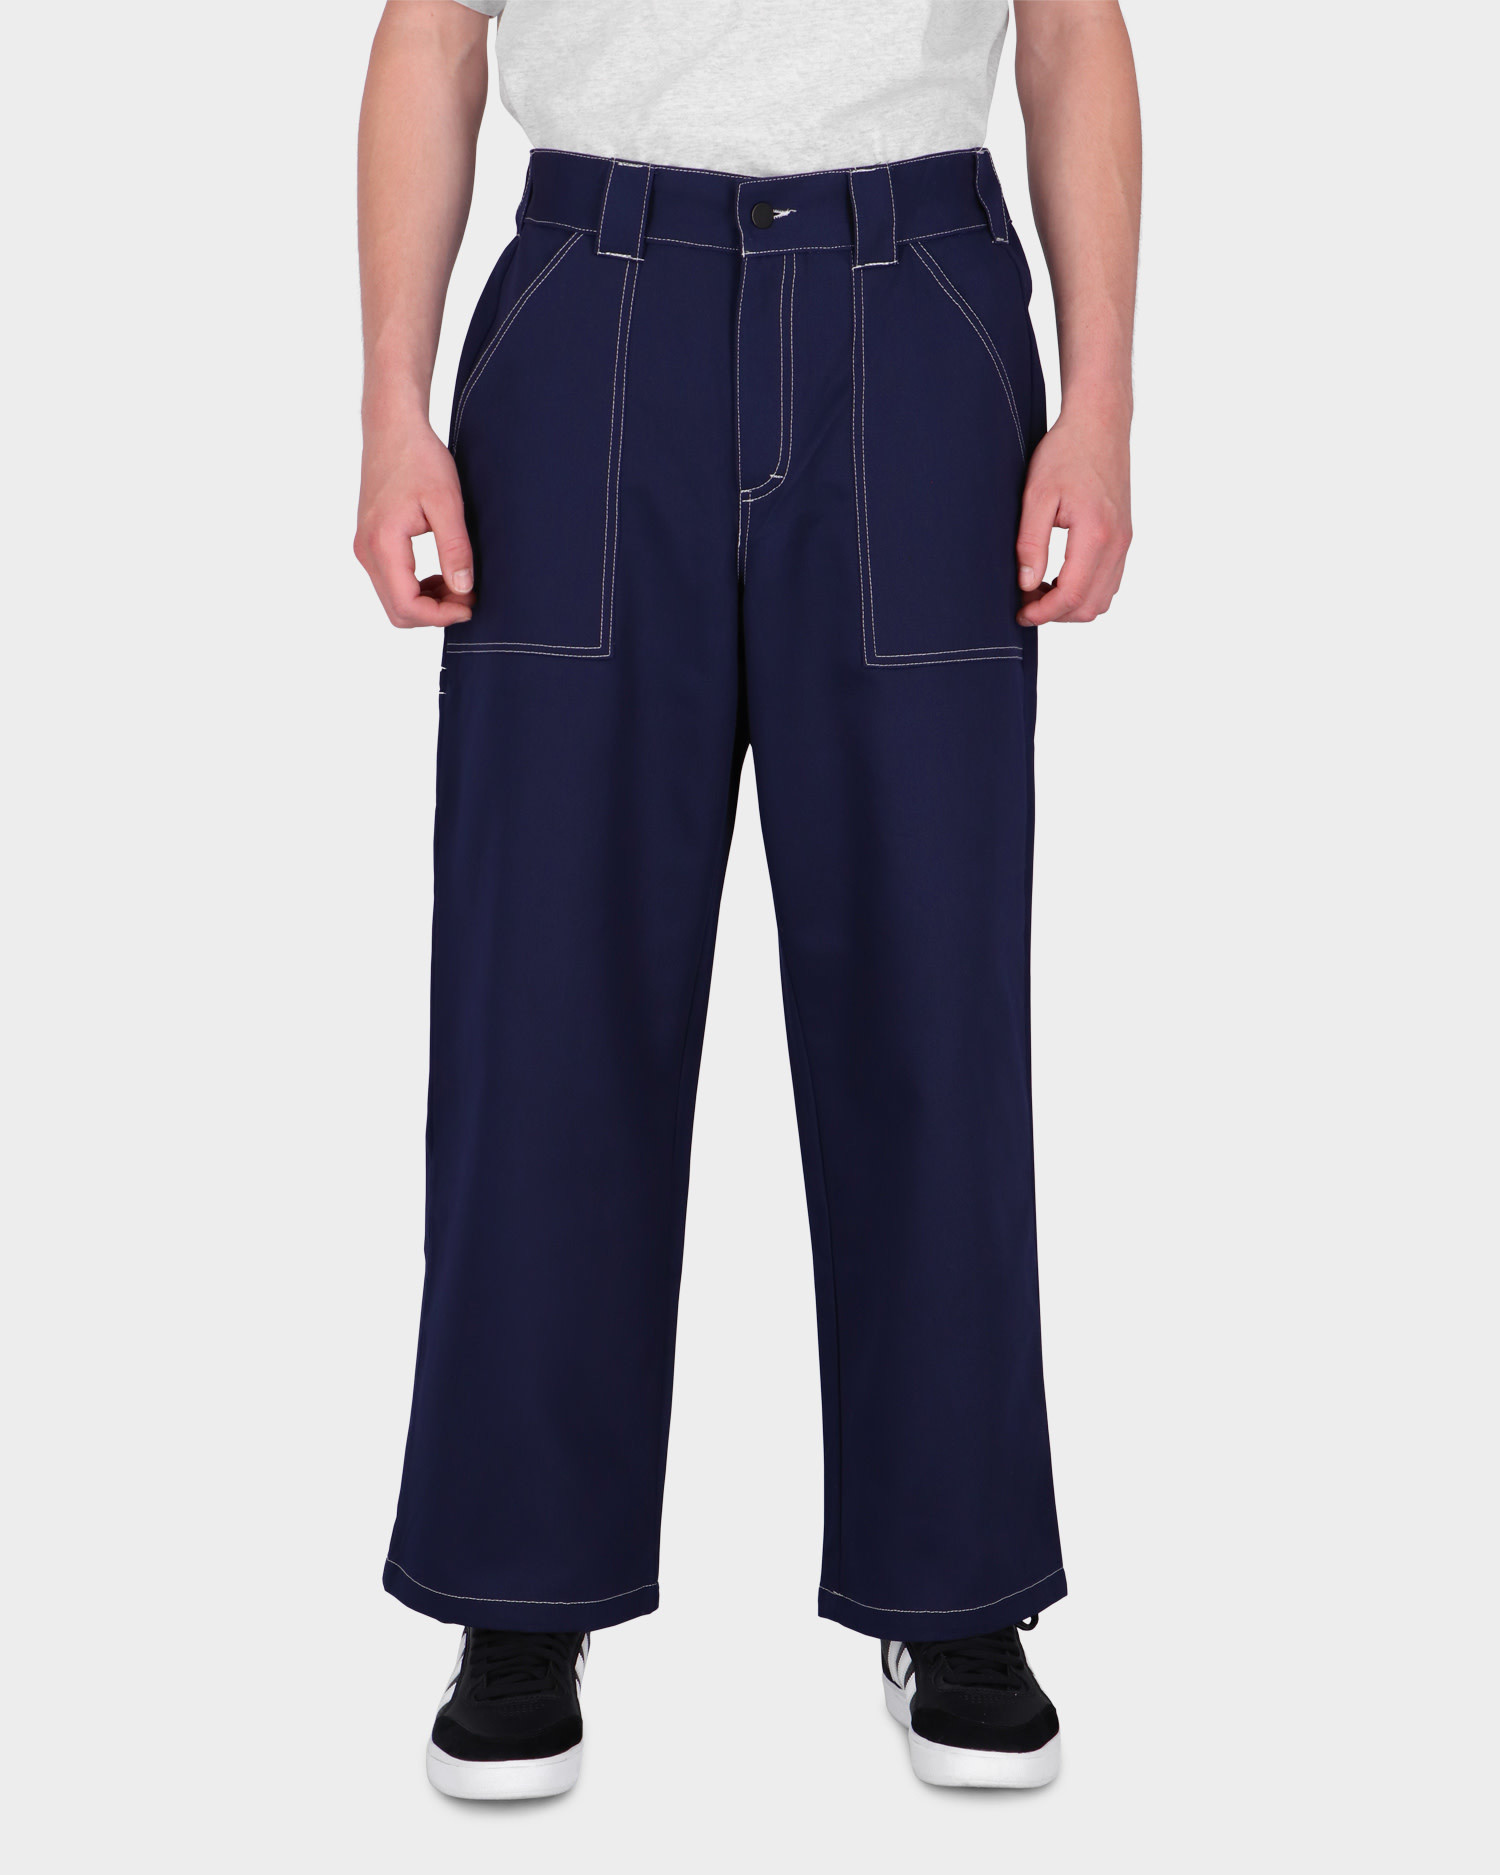 Poetic Collective Painter Pants Navy Blue